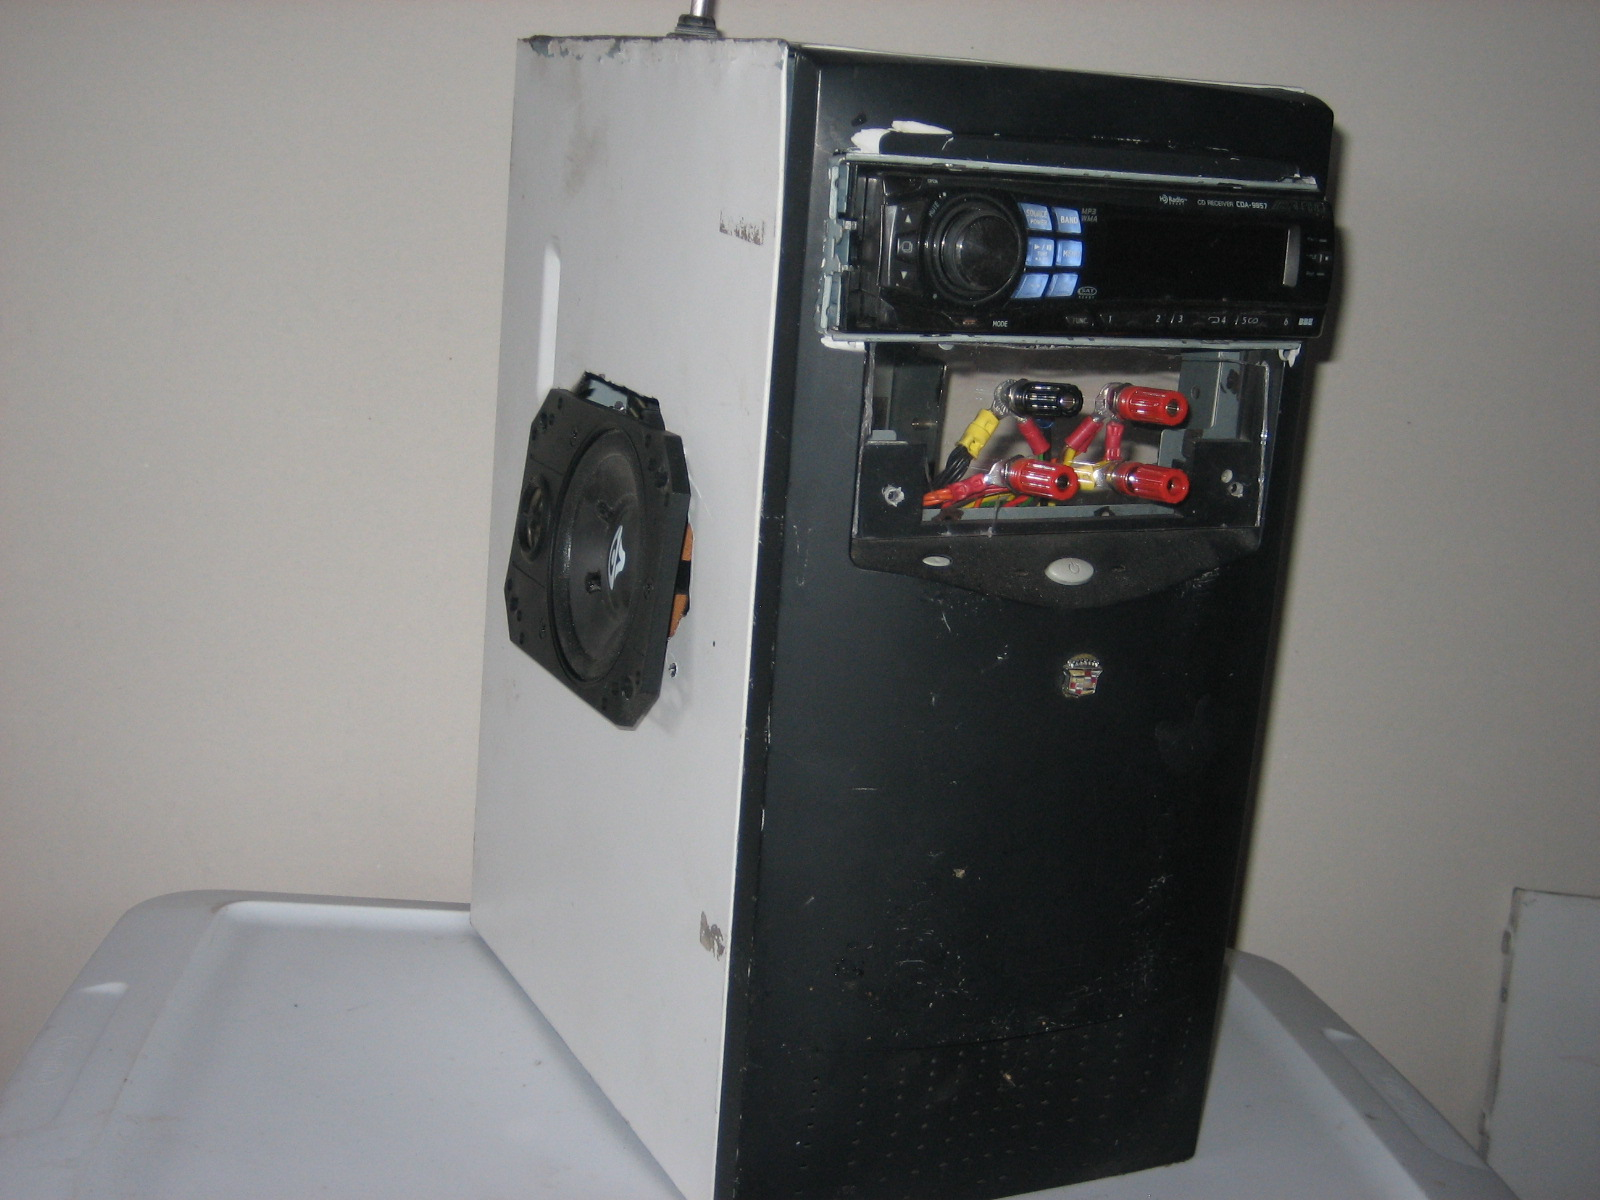 Convert a old computer into a stereo